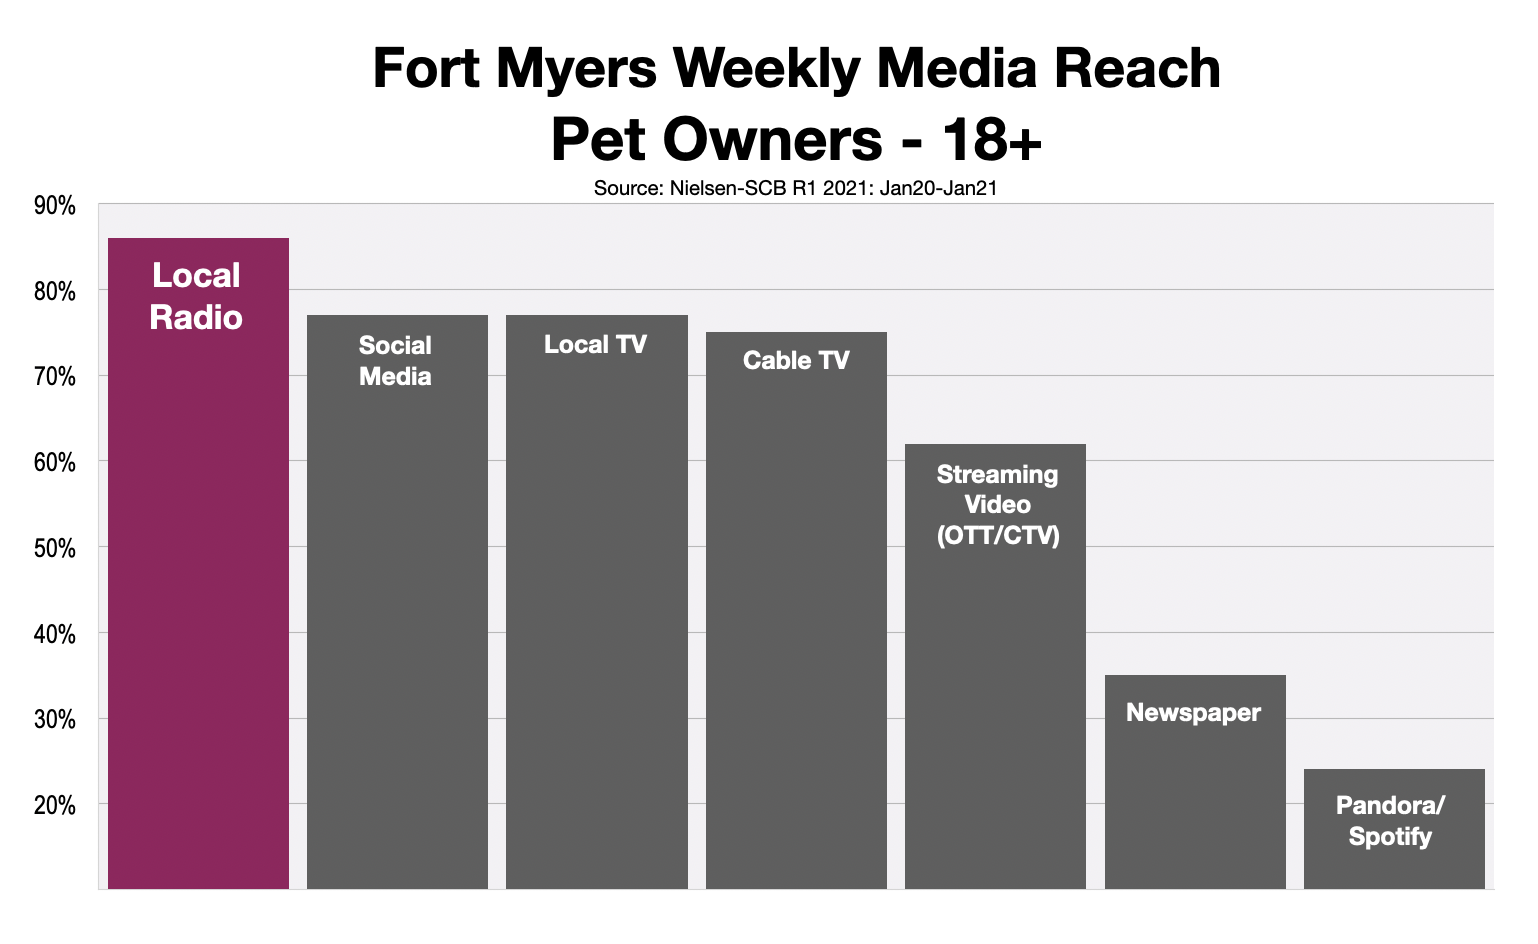 Advertising To Pet Owners In Fort Myers